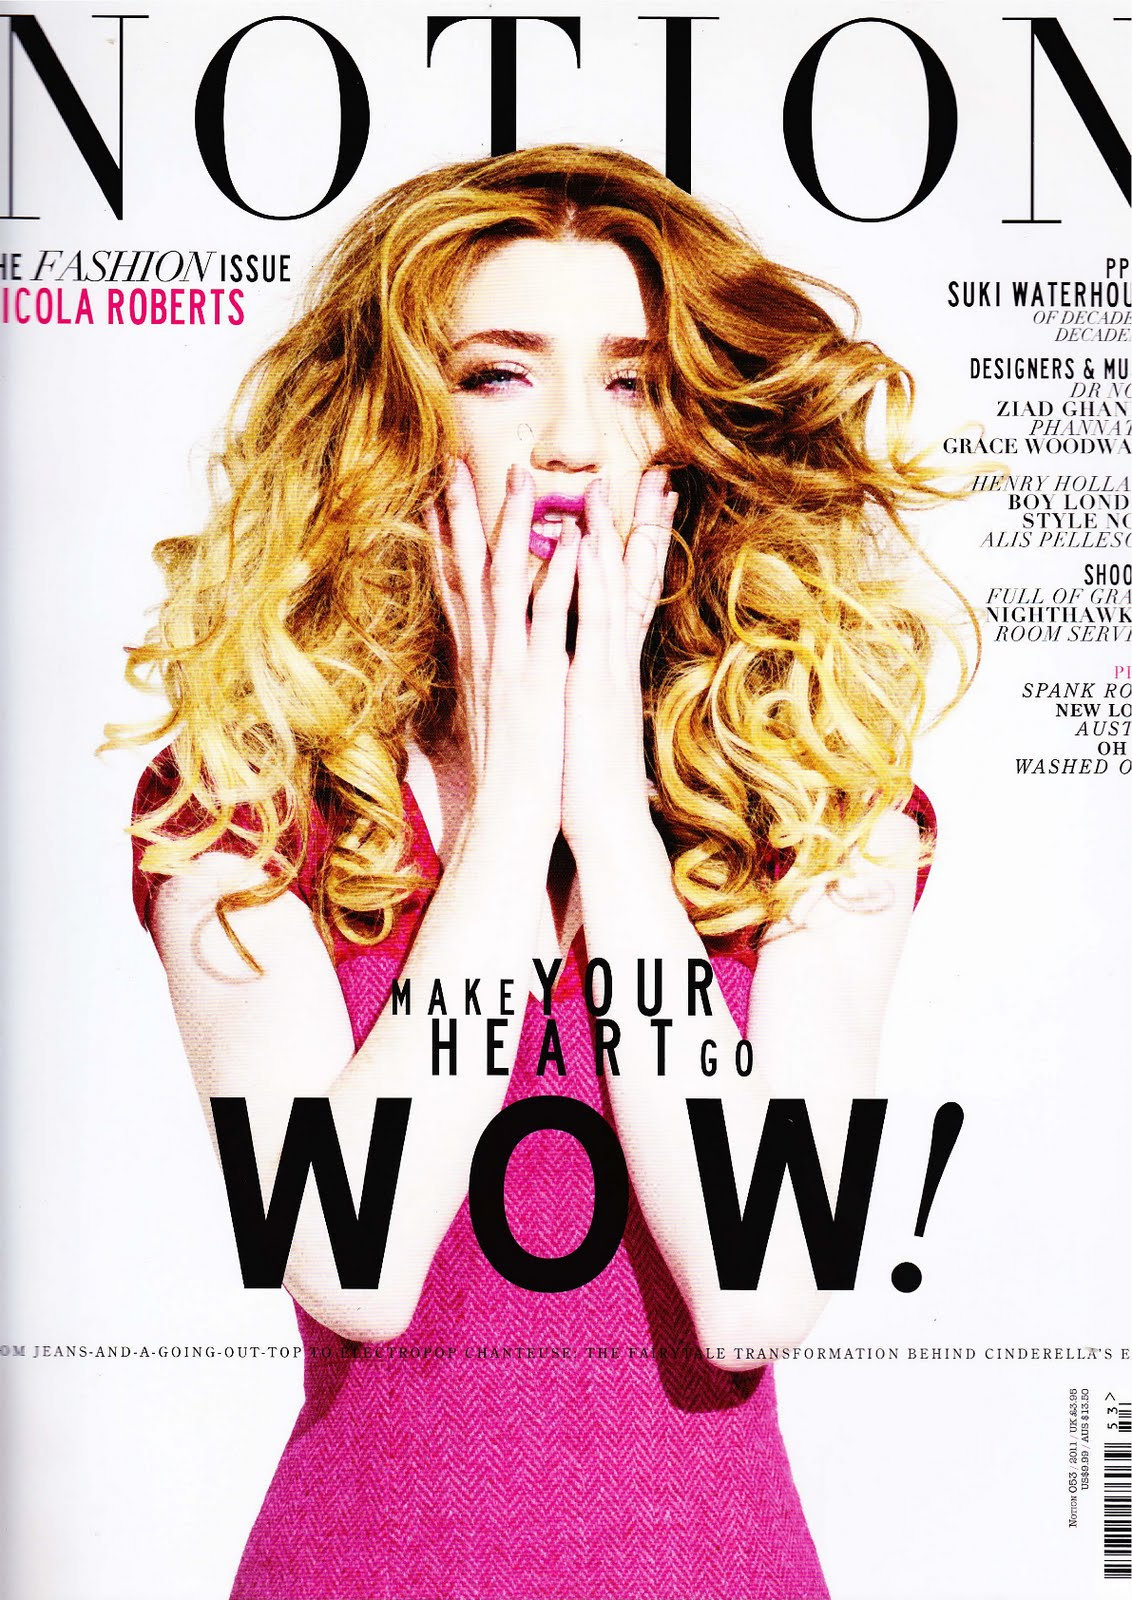 The Nicola Roberts cover I STYLED WAHOOOO!